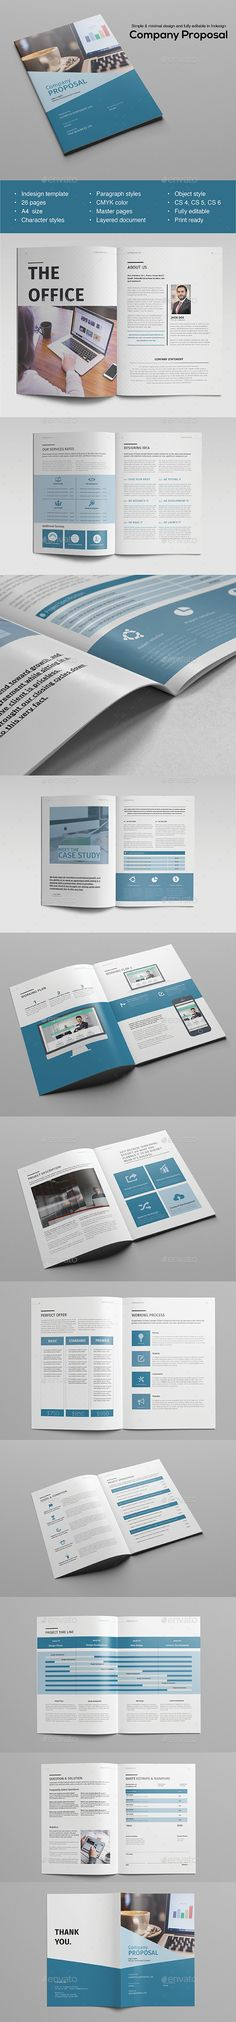 Business Proposal Business proposal, Proposals and Business - it services proposal template